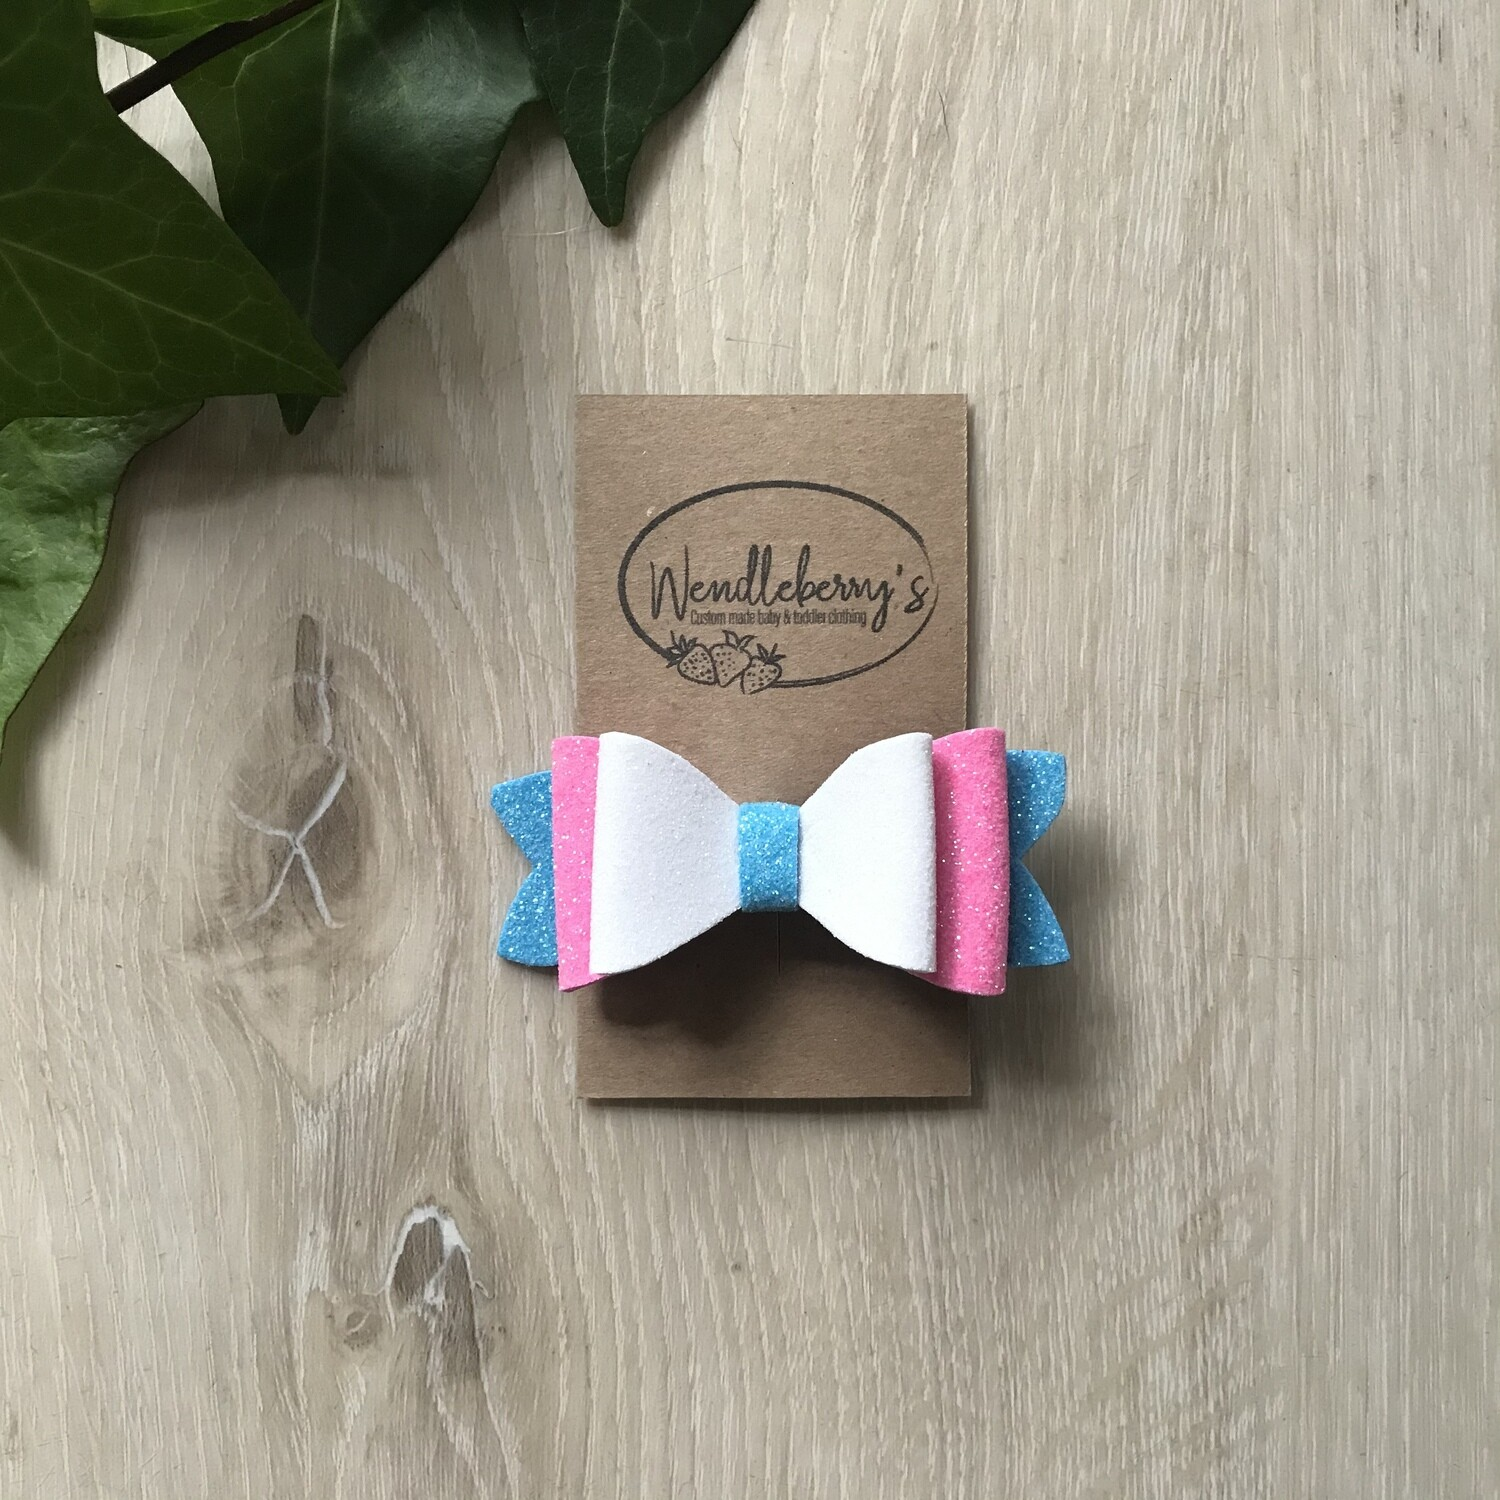 Turquoise, white and pink bow clip